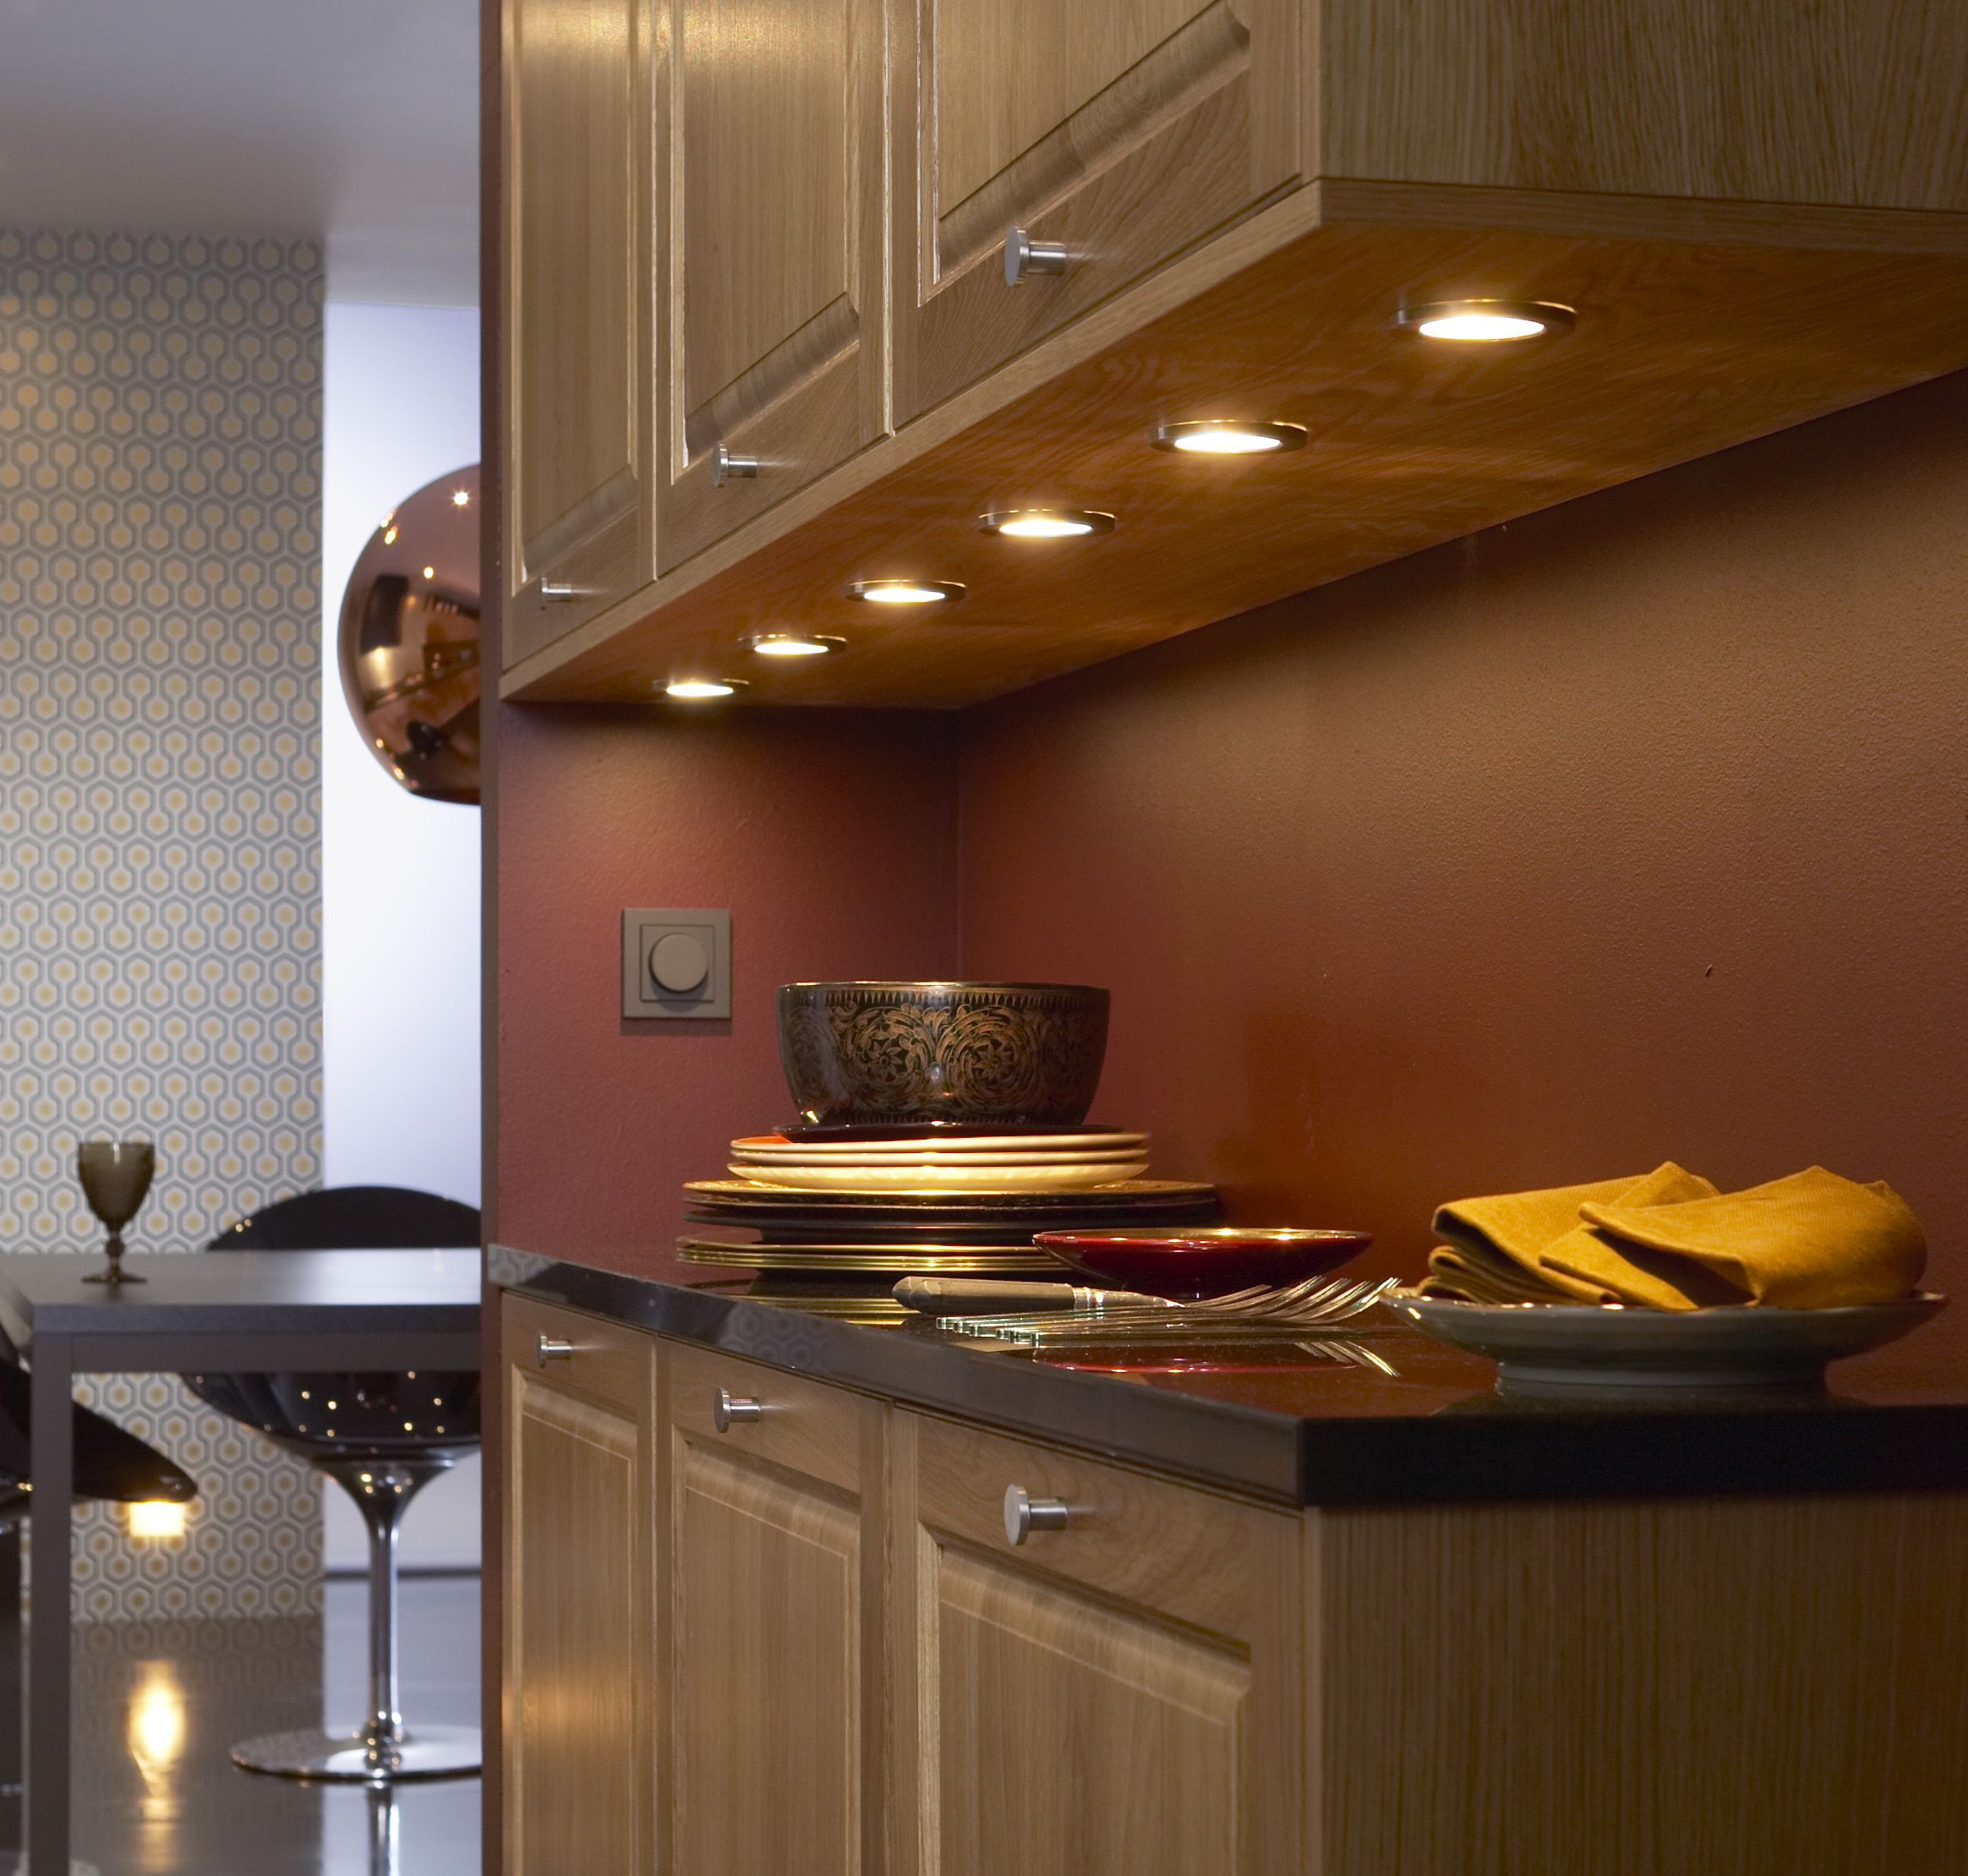 kitchen cabinet under lighting. kitchen lighting google search pinterest kitchens and lights led cabinets cabinet under d